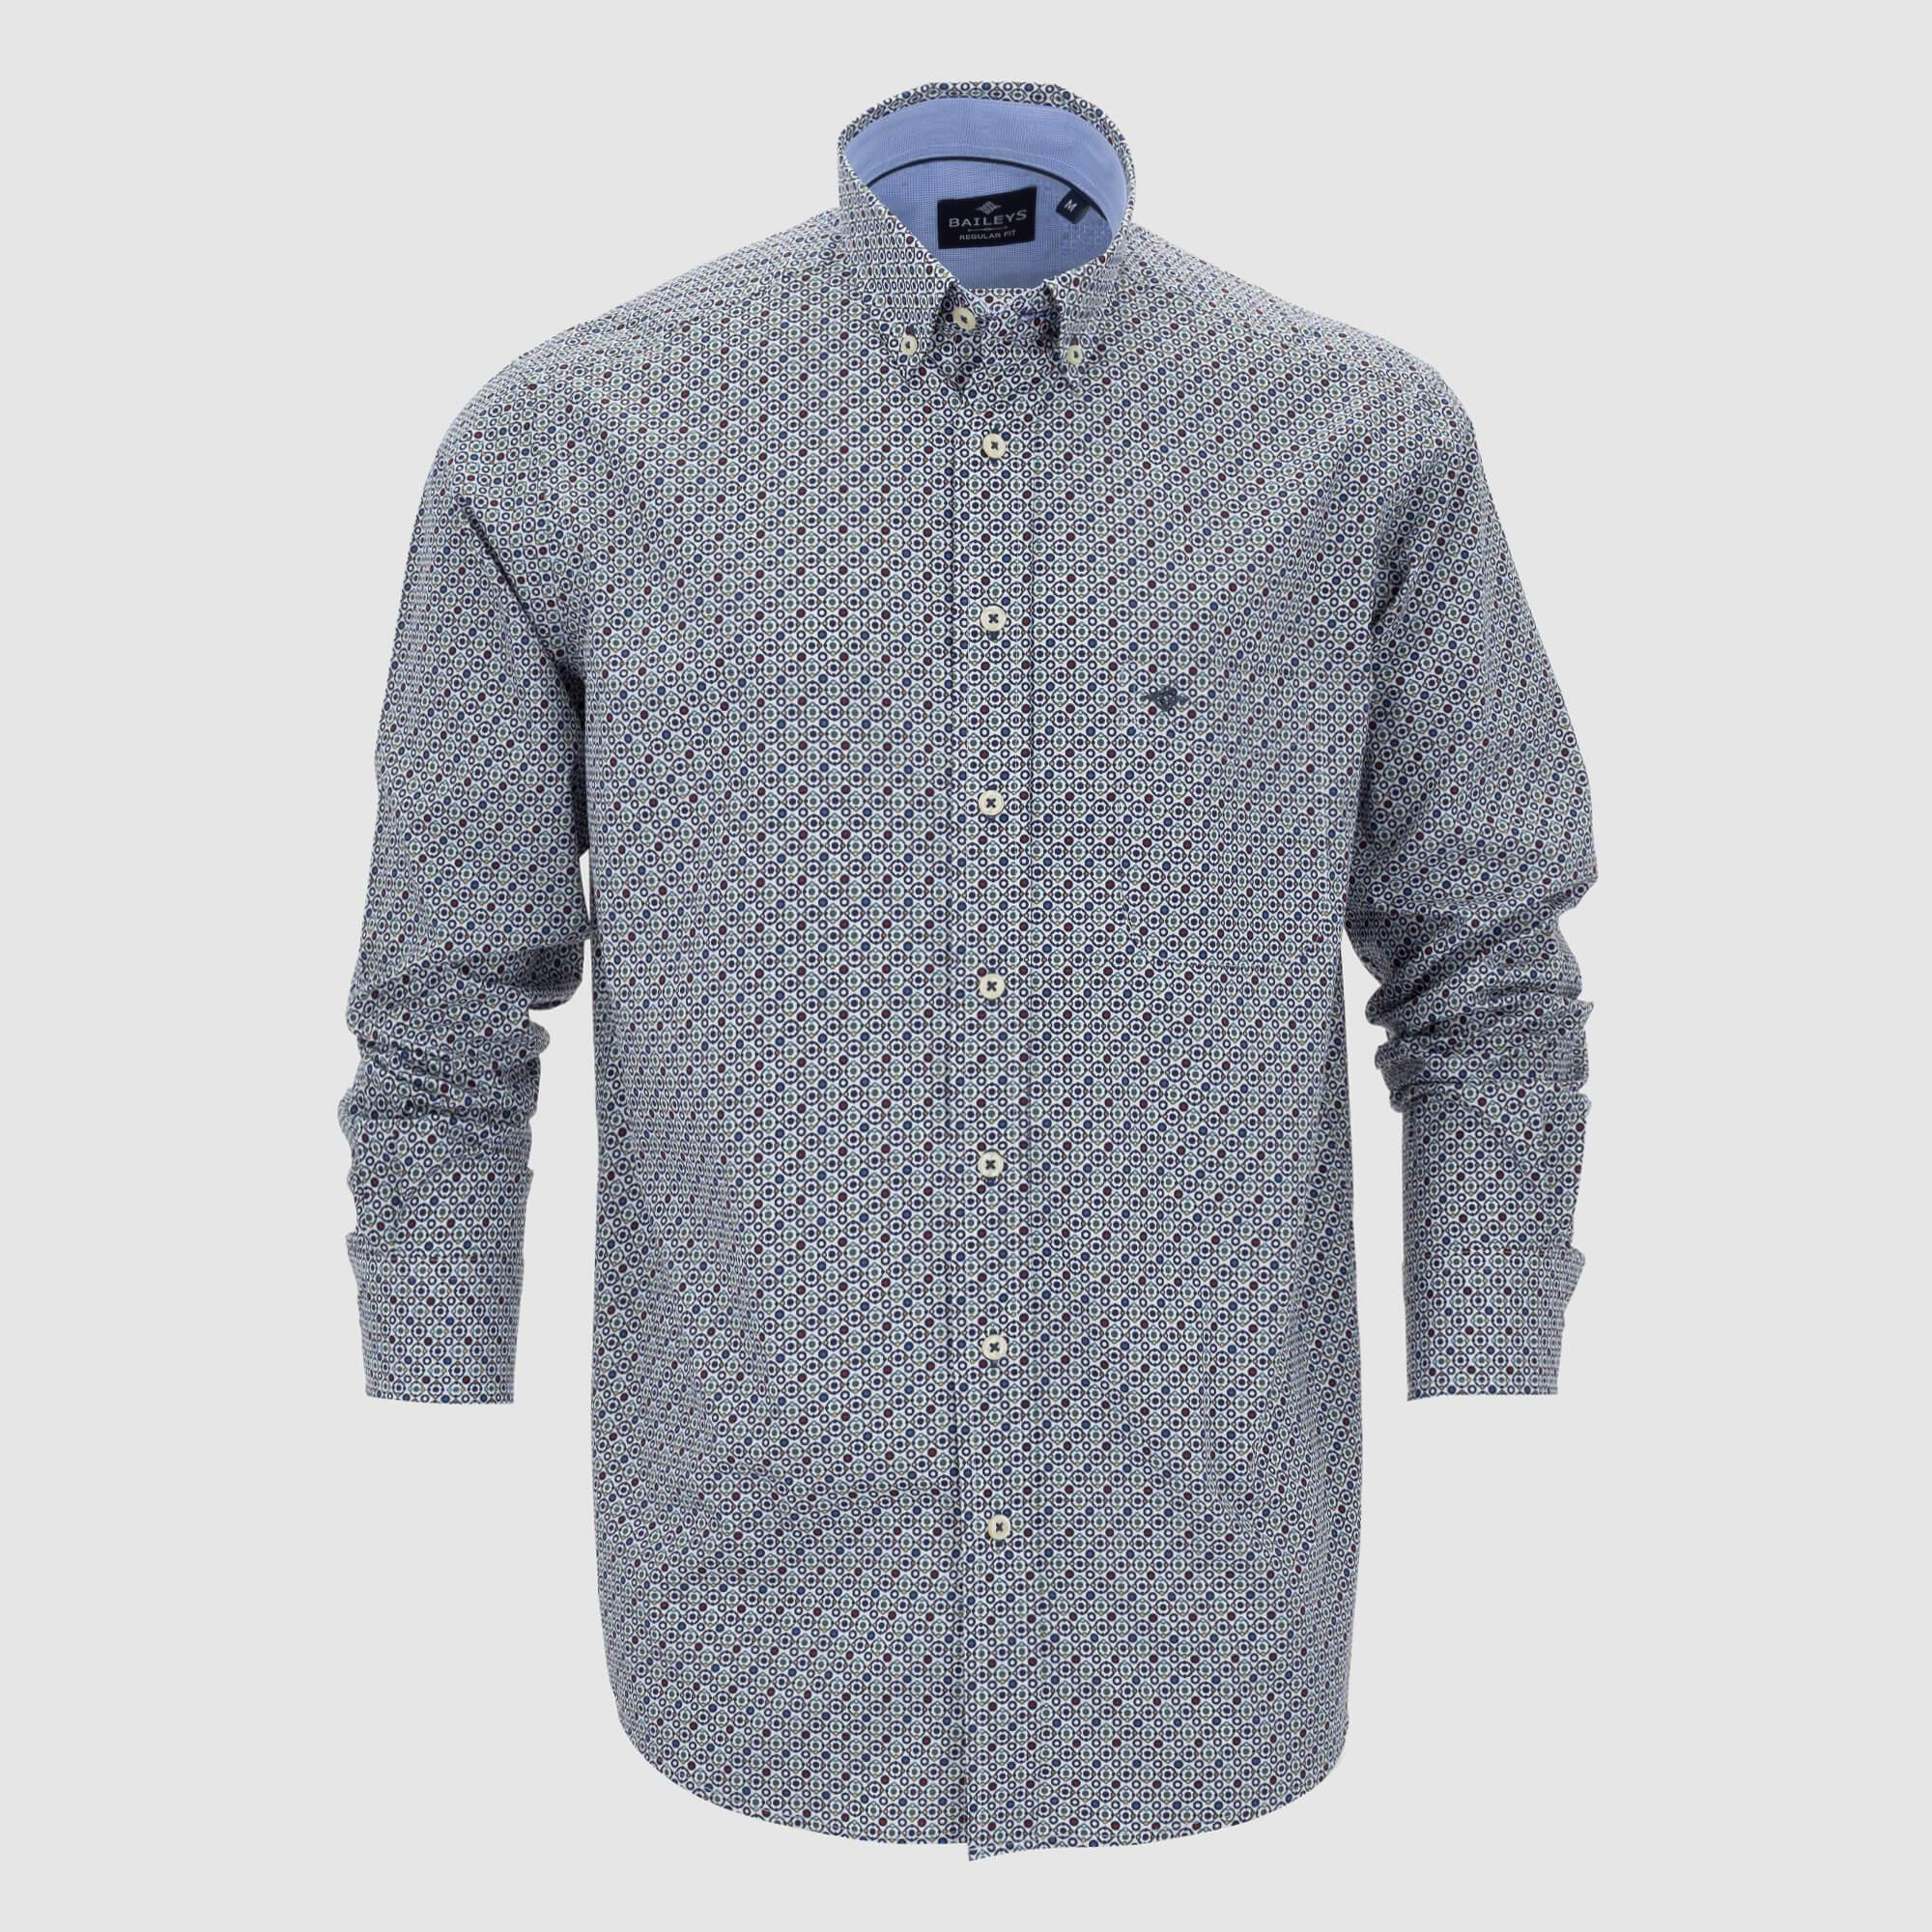 Camisa estampada regular fit 207672